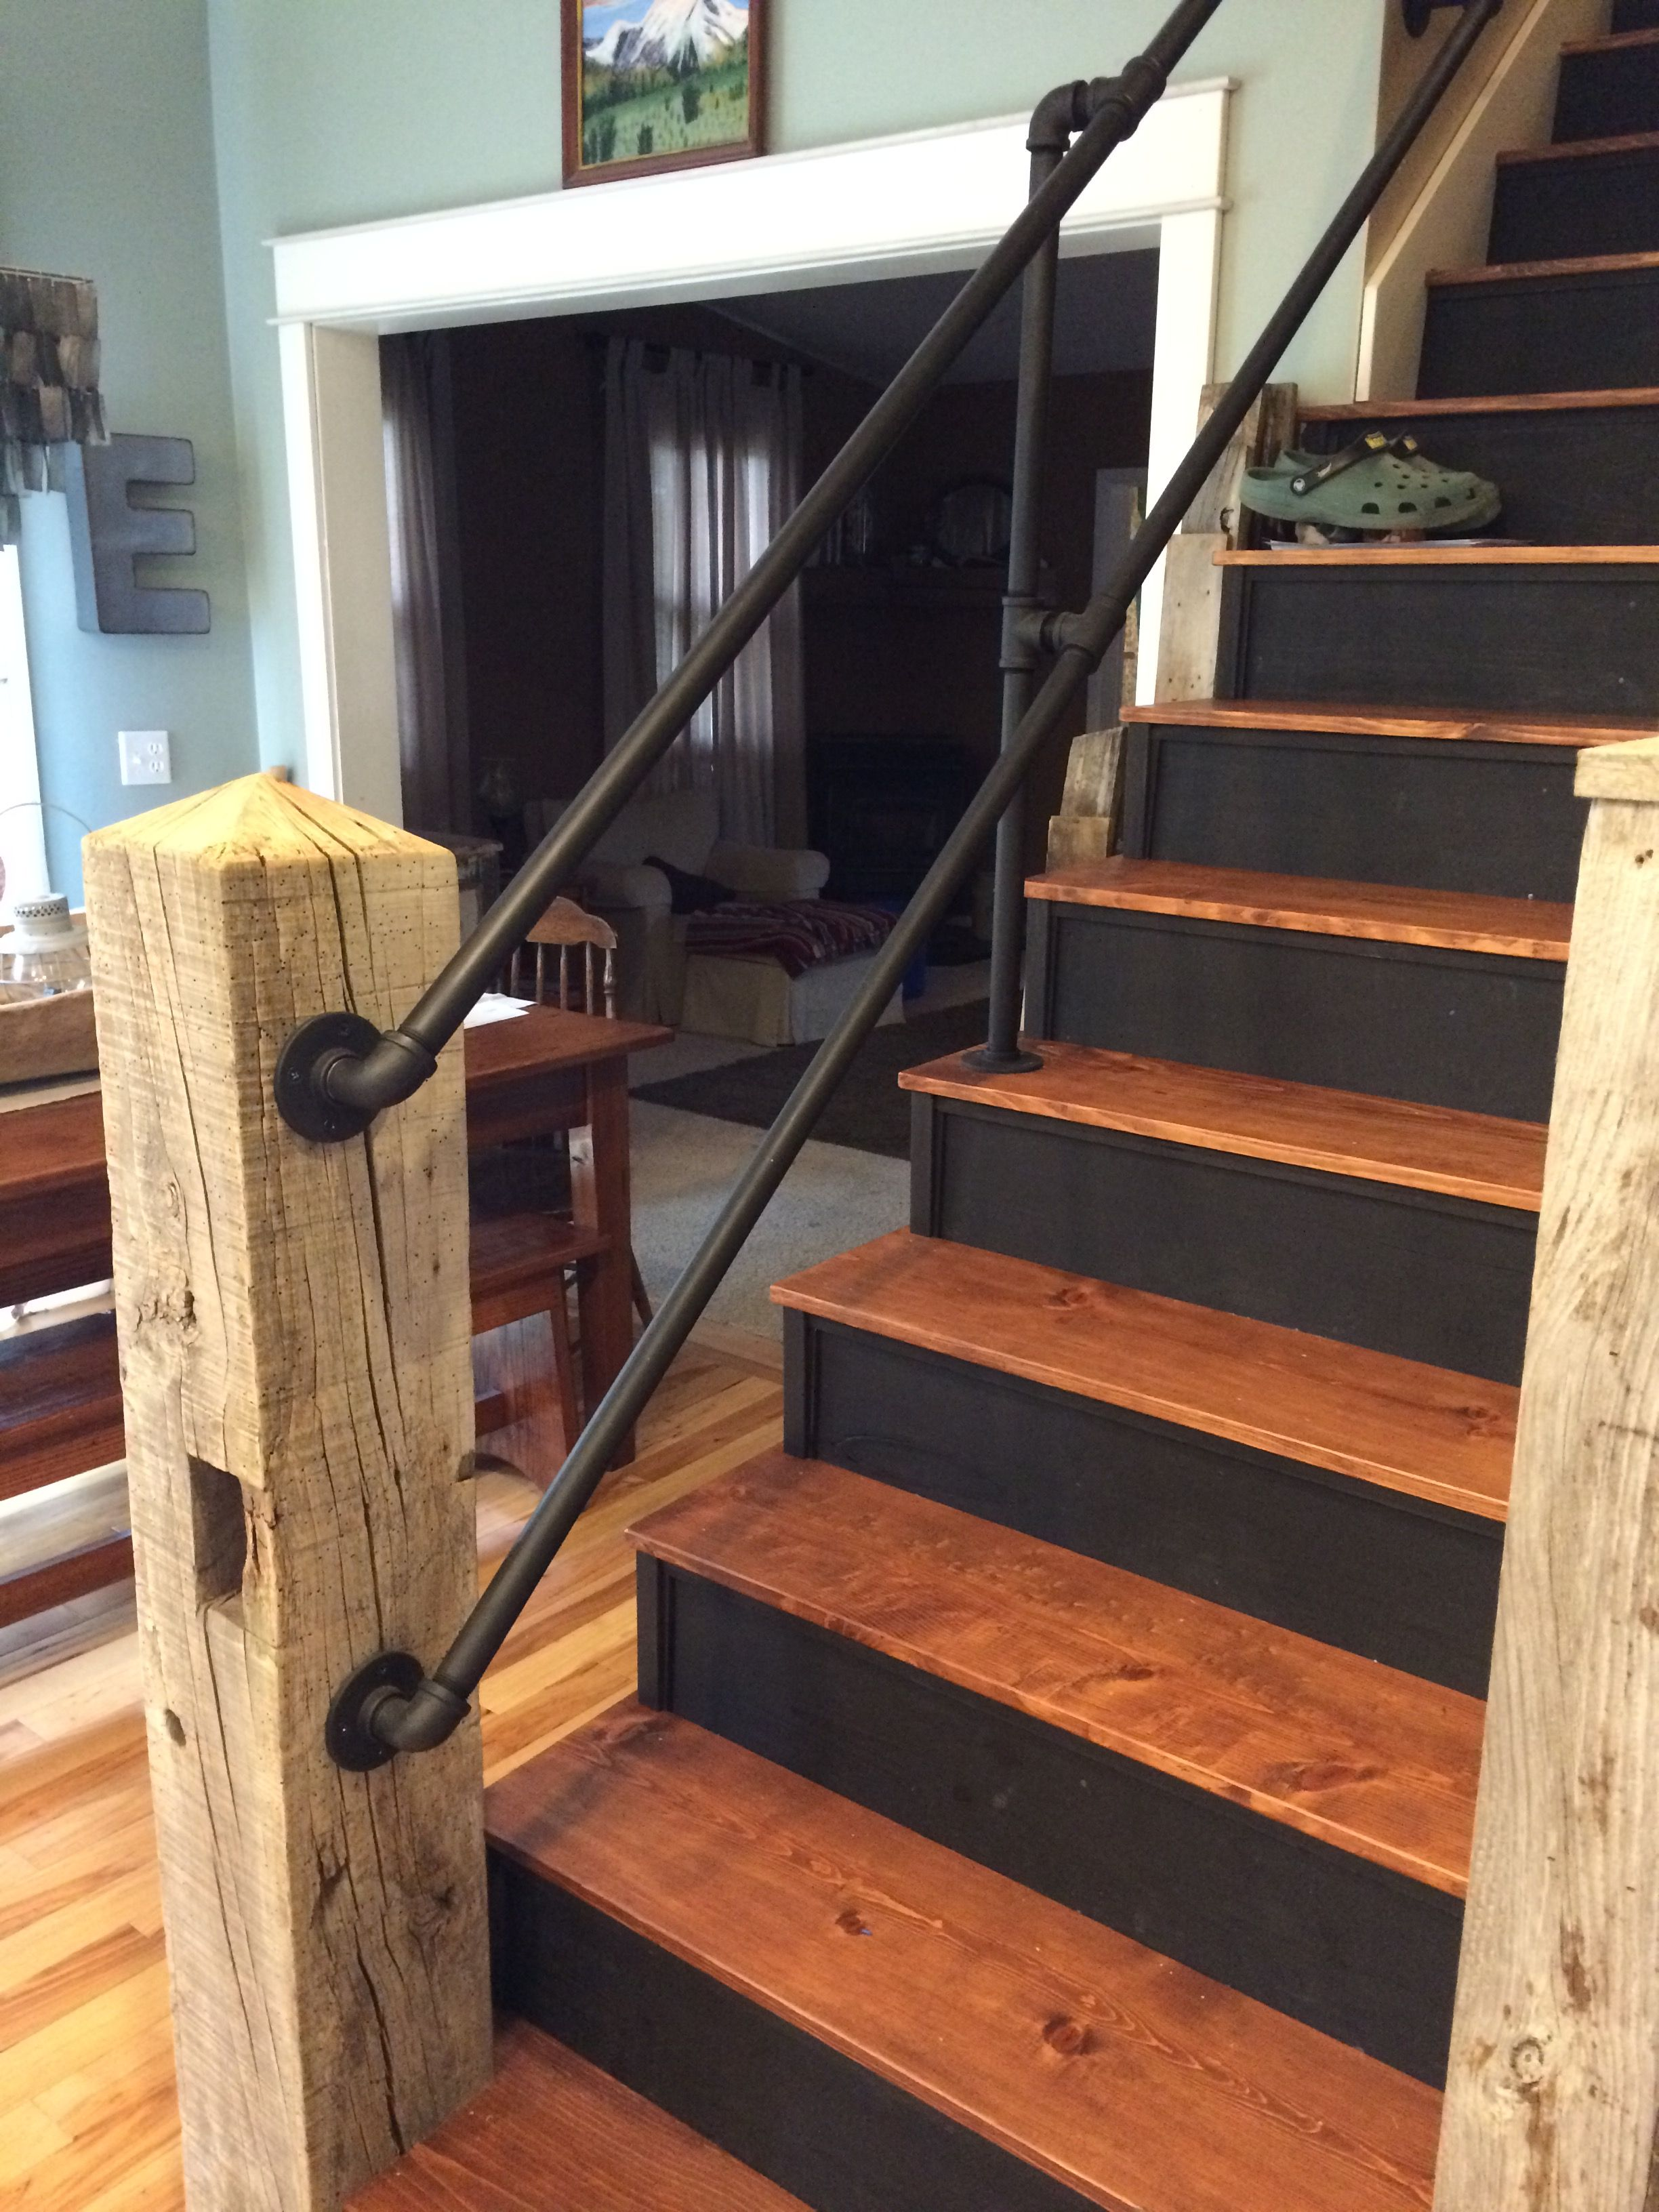 Pin On Garage Ideas   Pipe Handrails For Steps   Simple Pipe   Kee Klamp   Contemporary Wood   House   Stair Outdoor Decatur